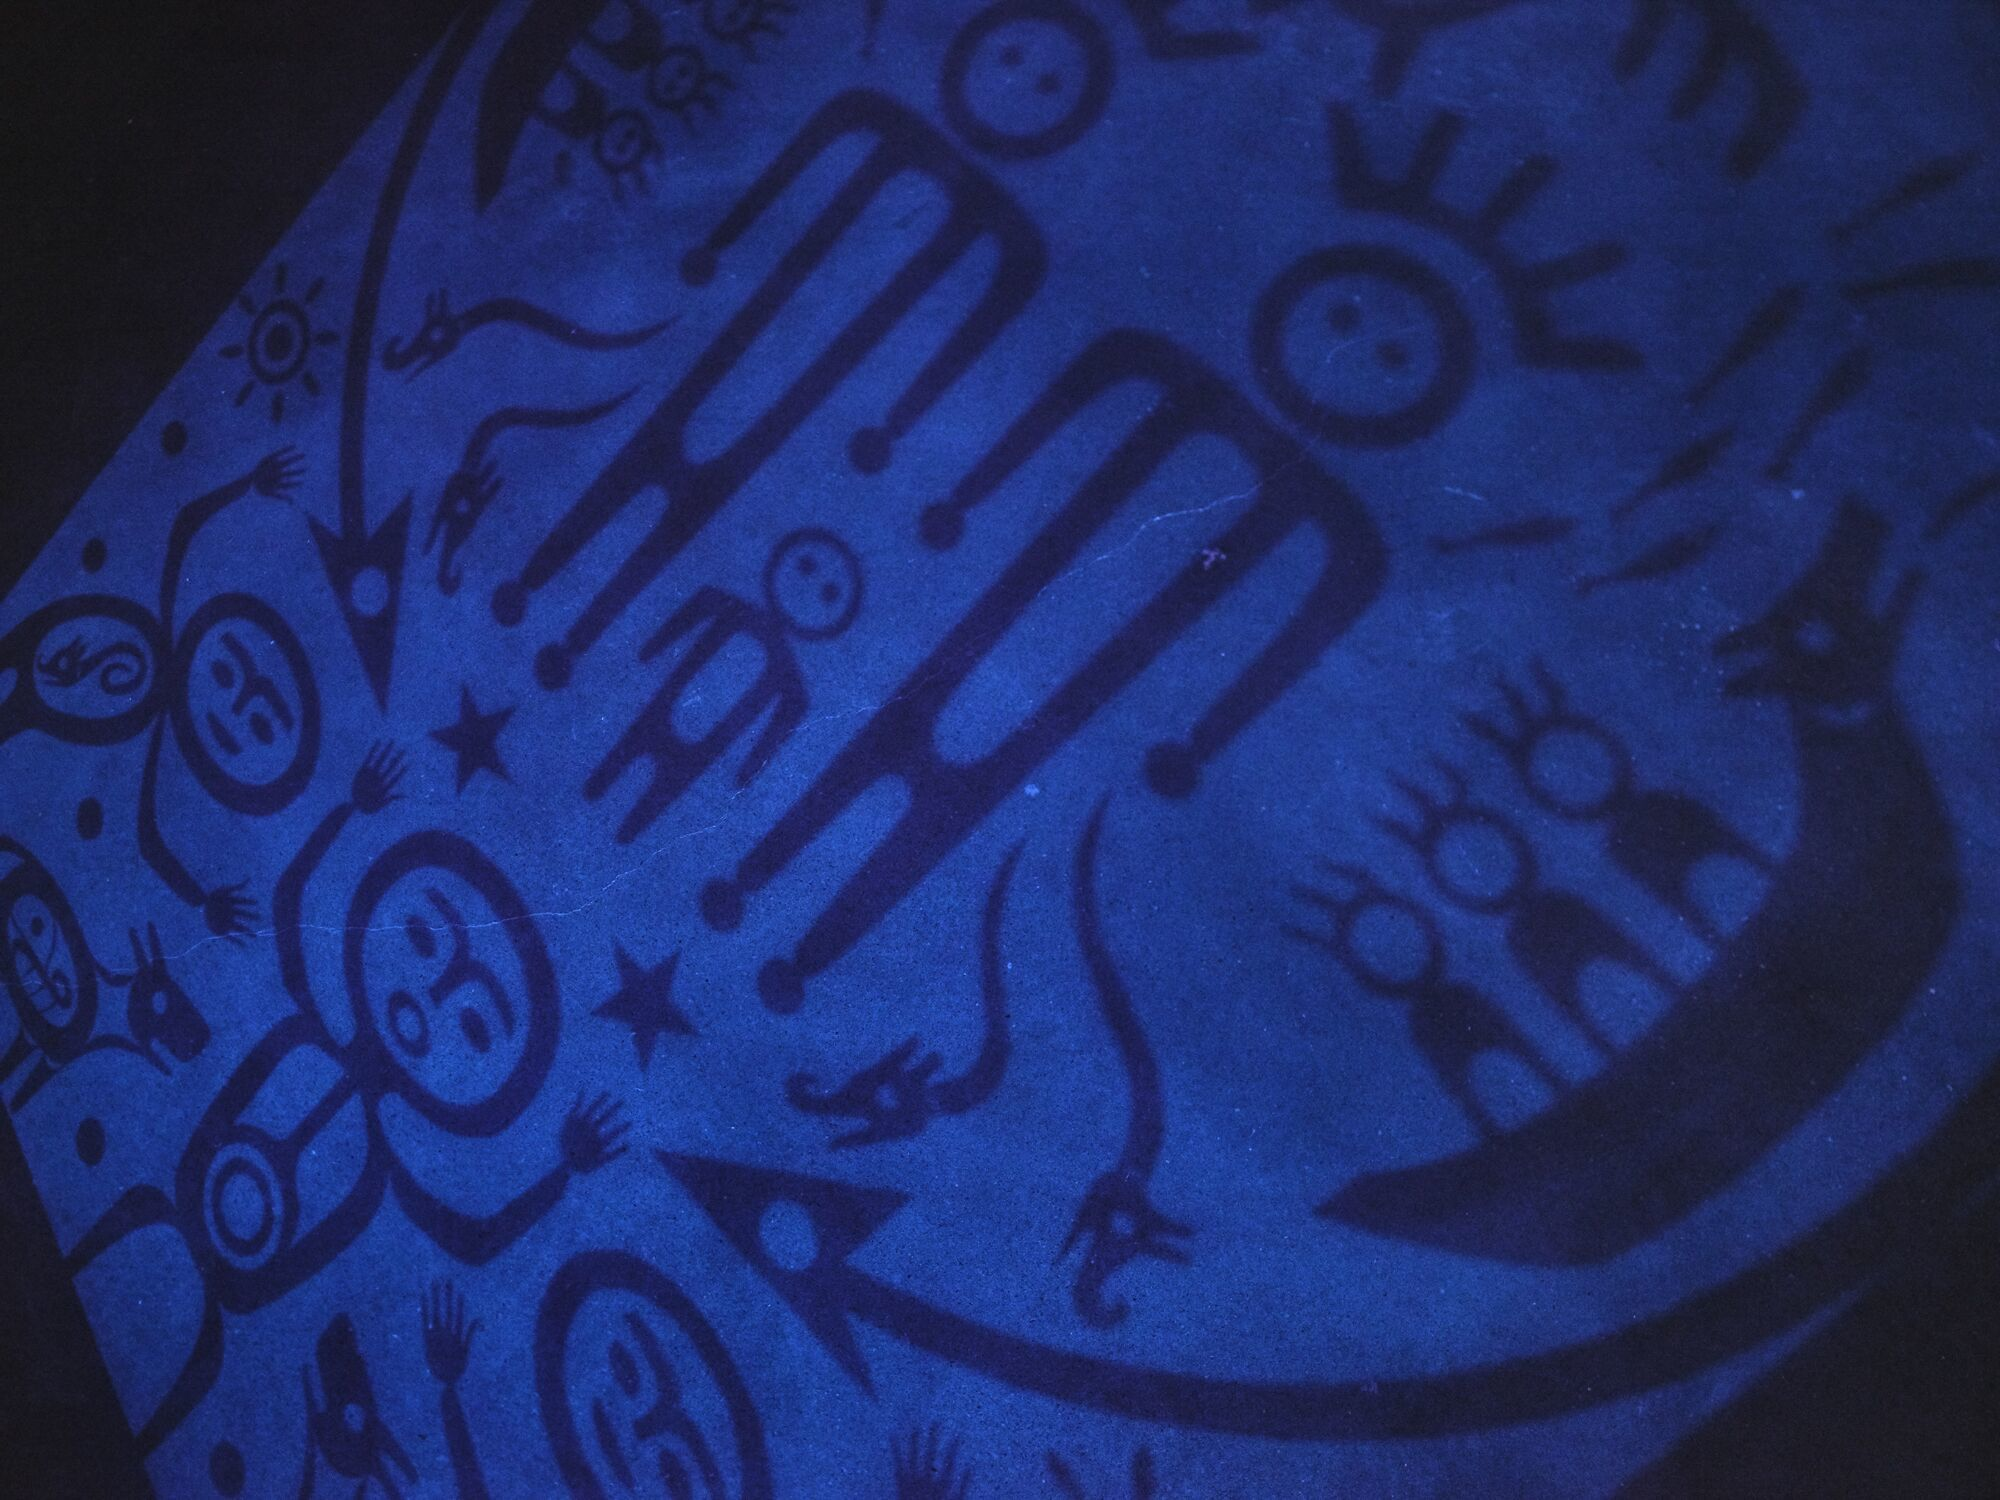 Pictographic figures rendered in blue light